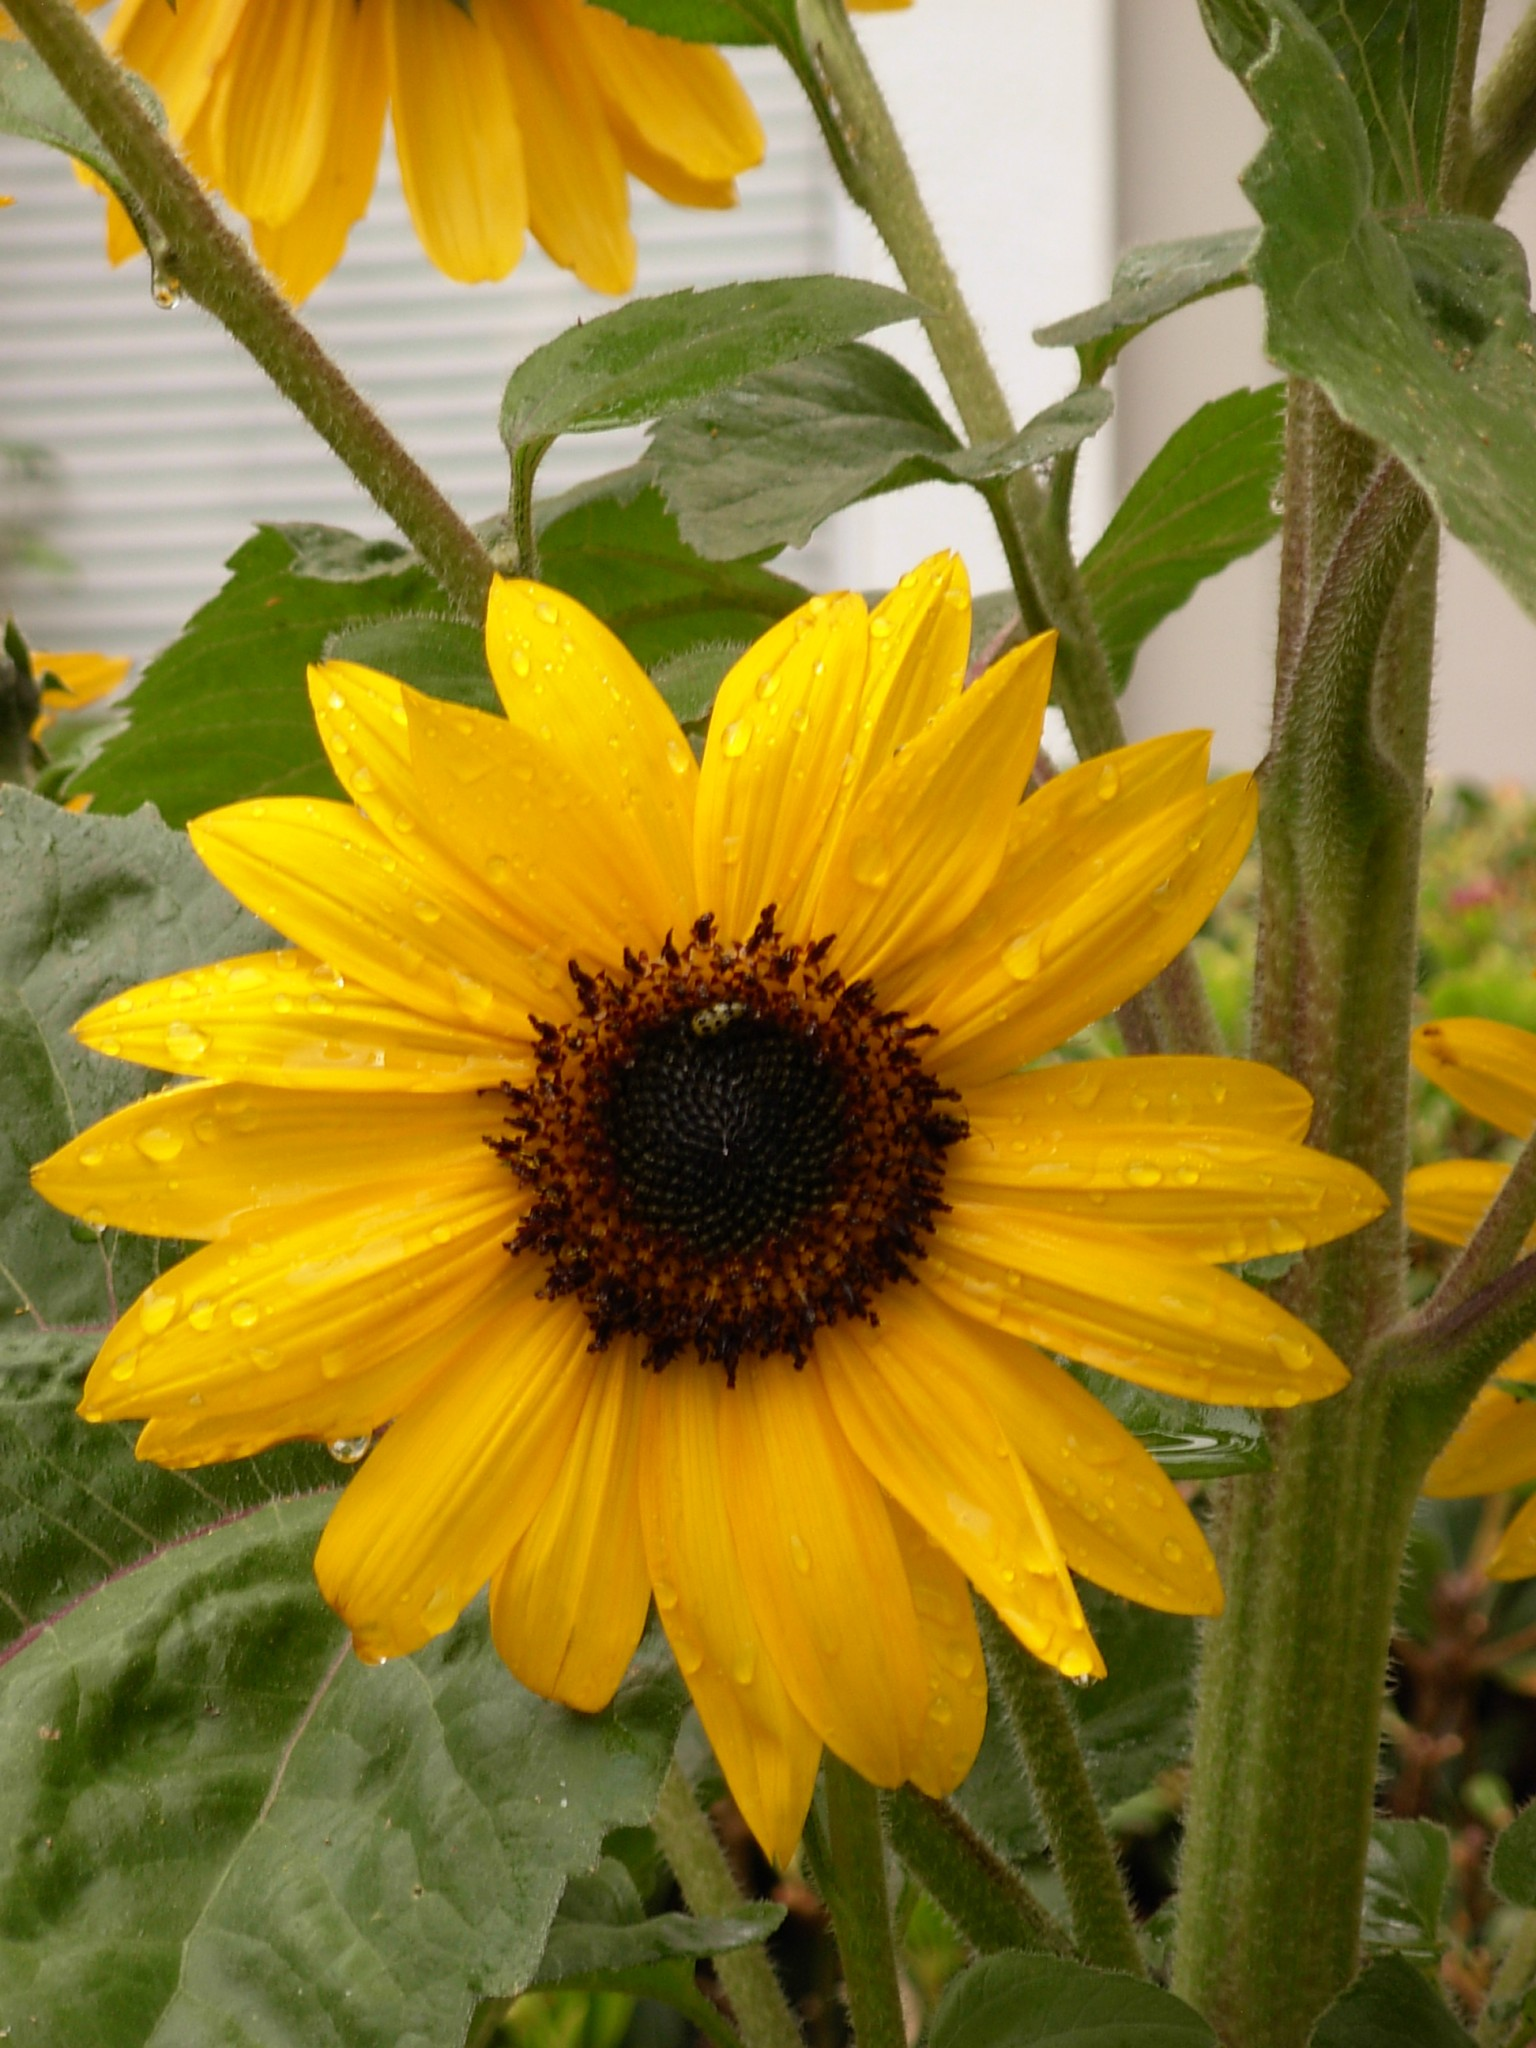 Rainy Sunflower